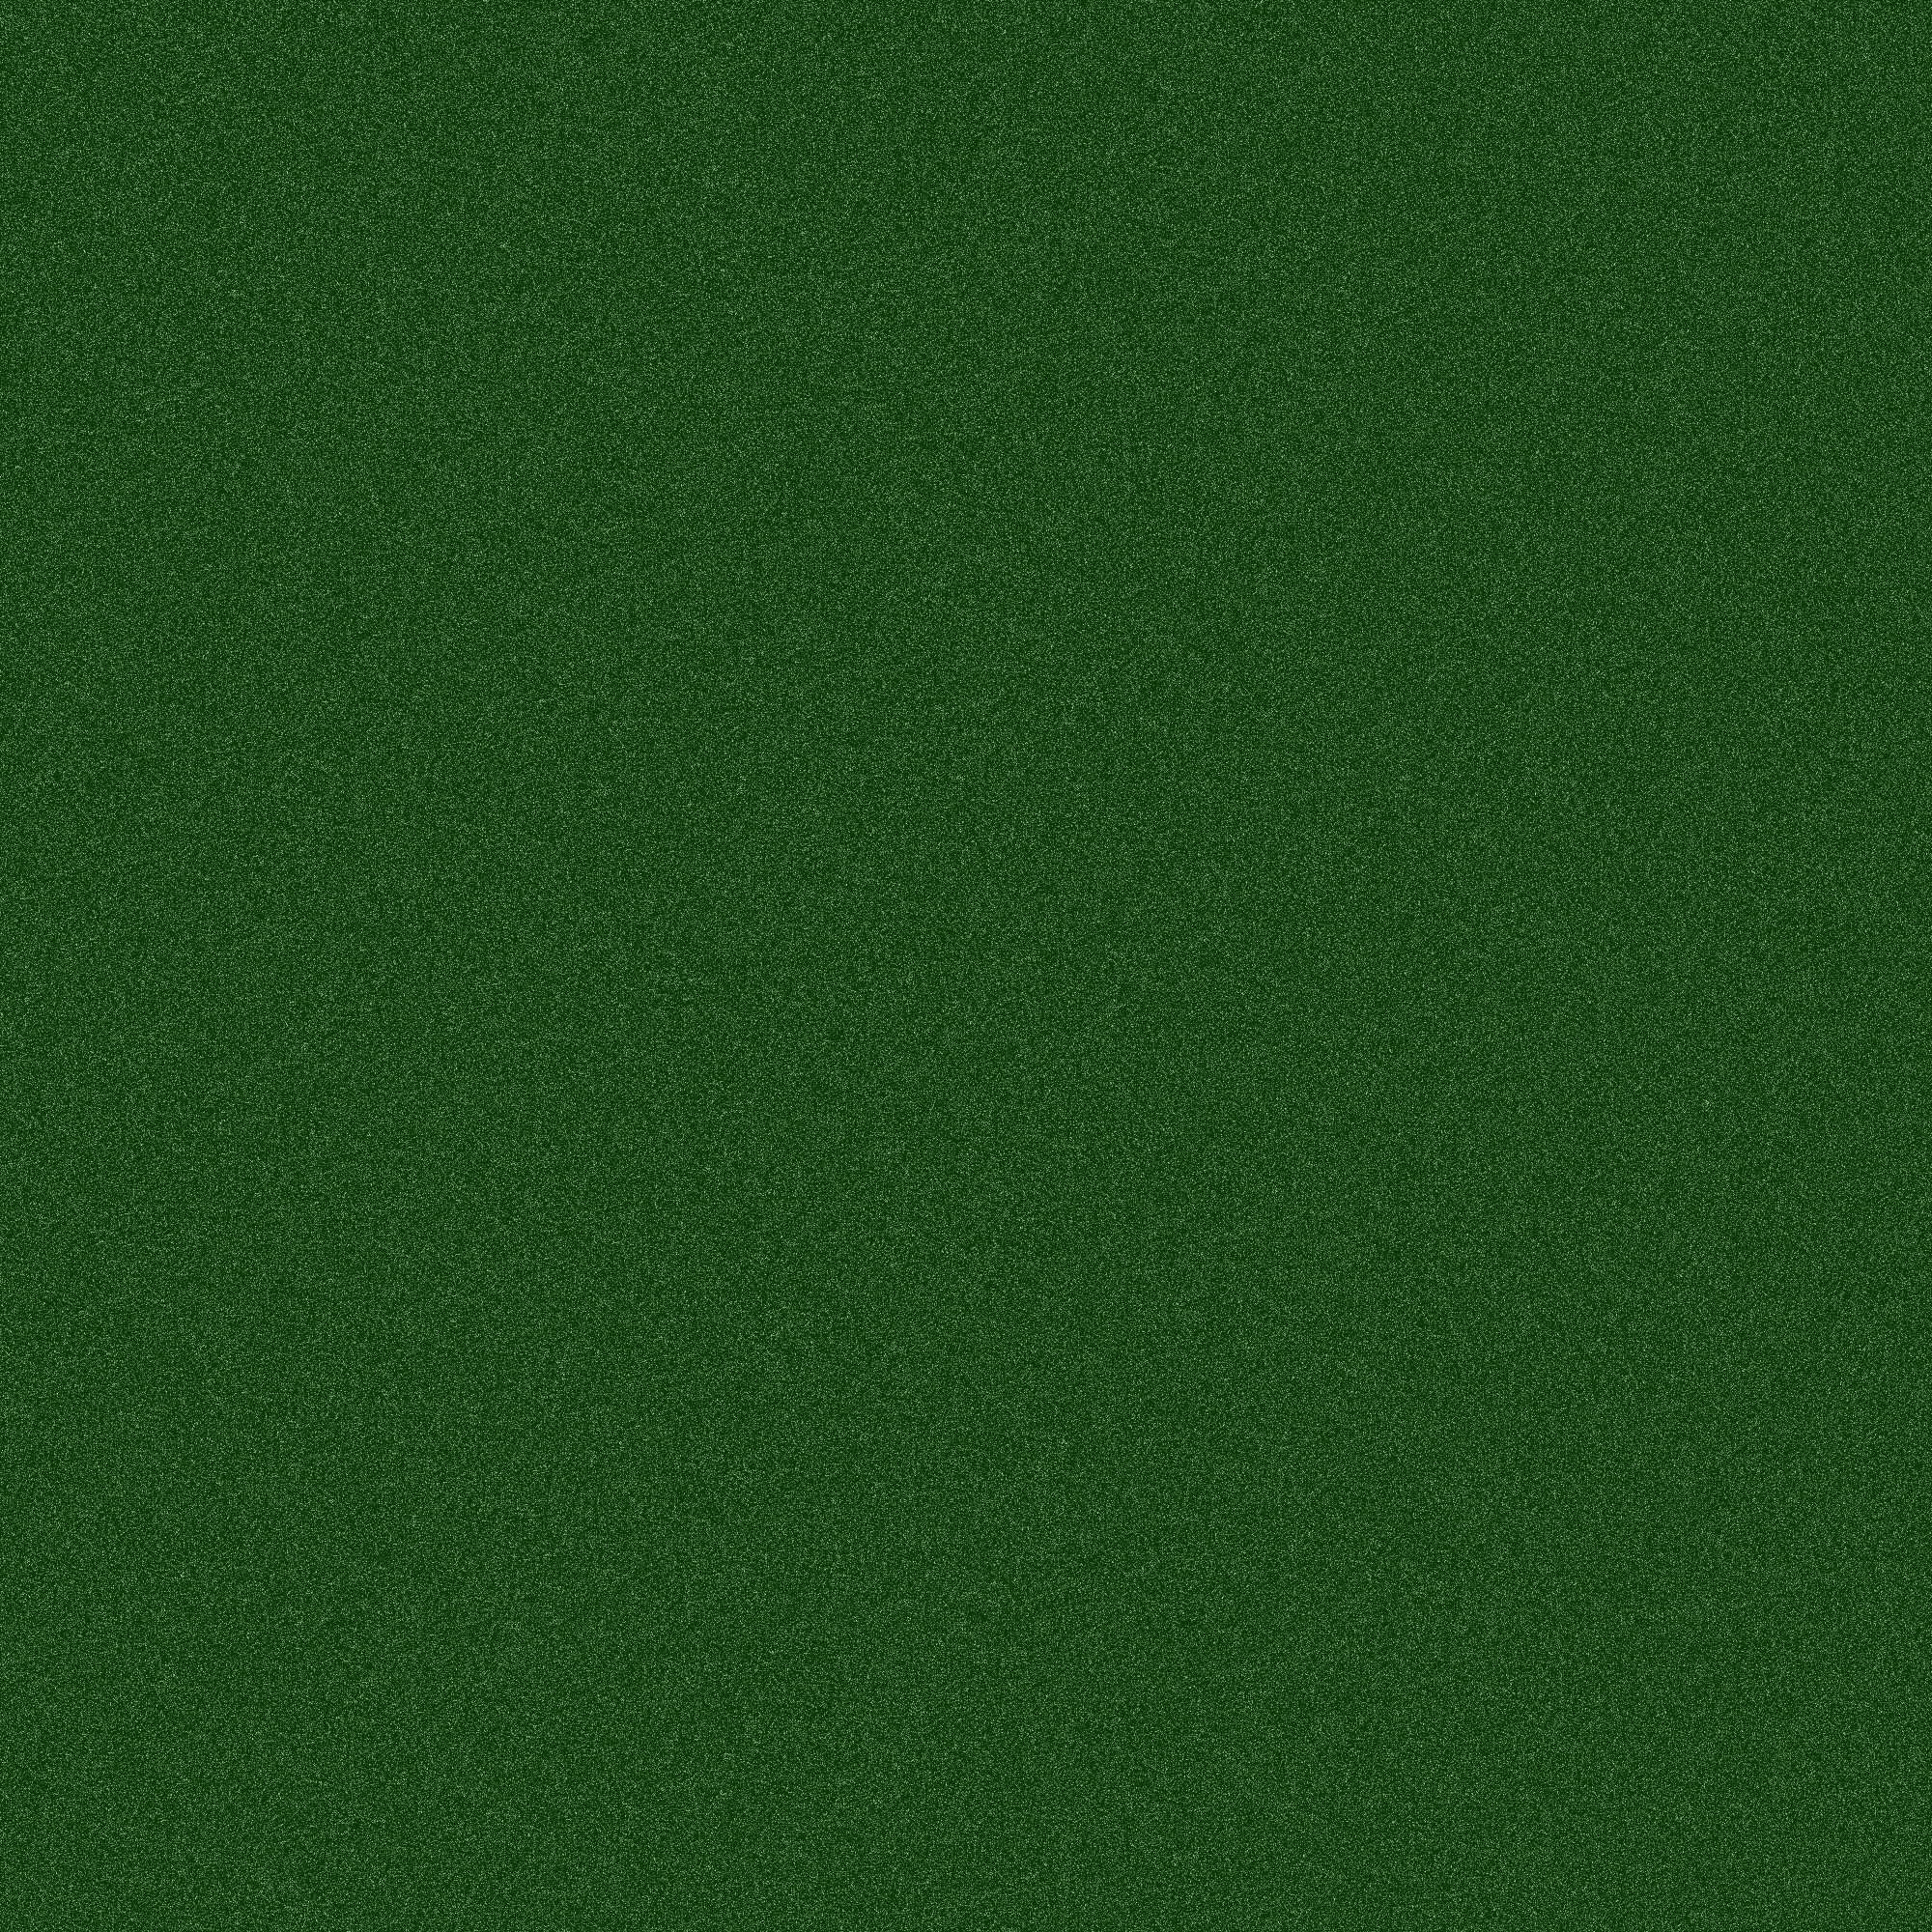 2000x2000 noize_background_darkgreen